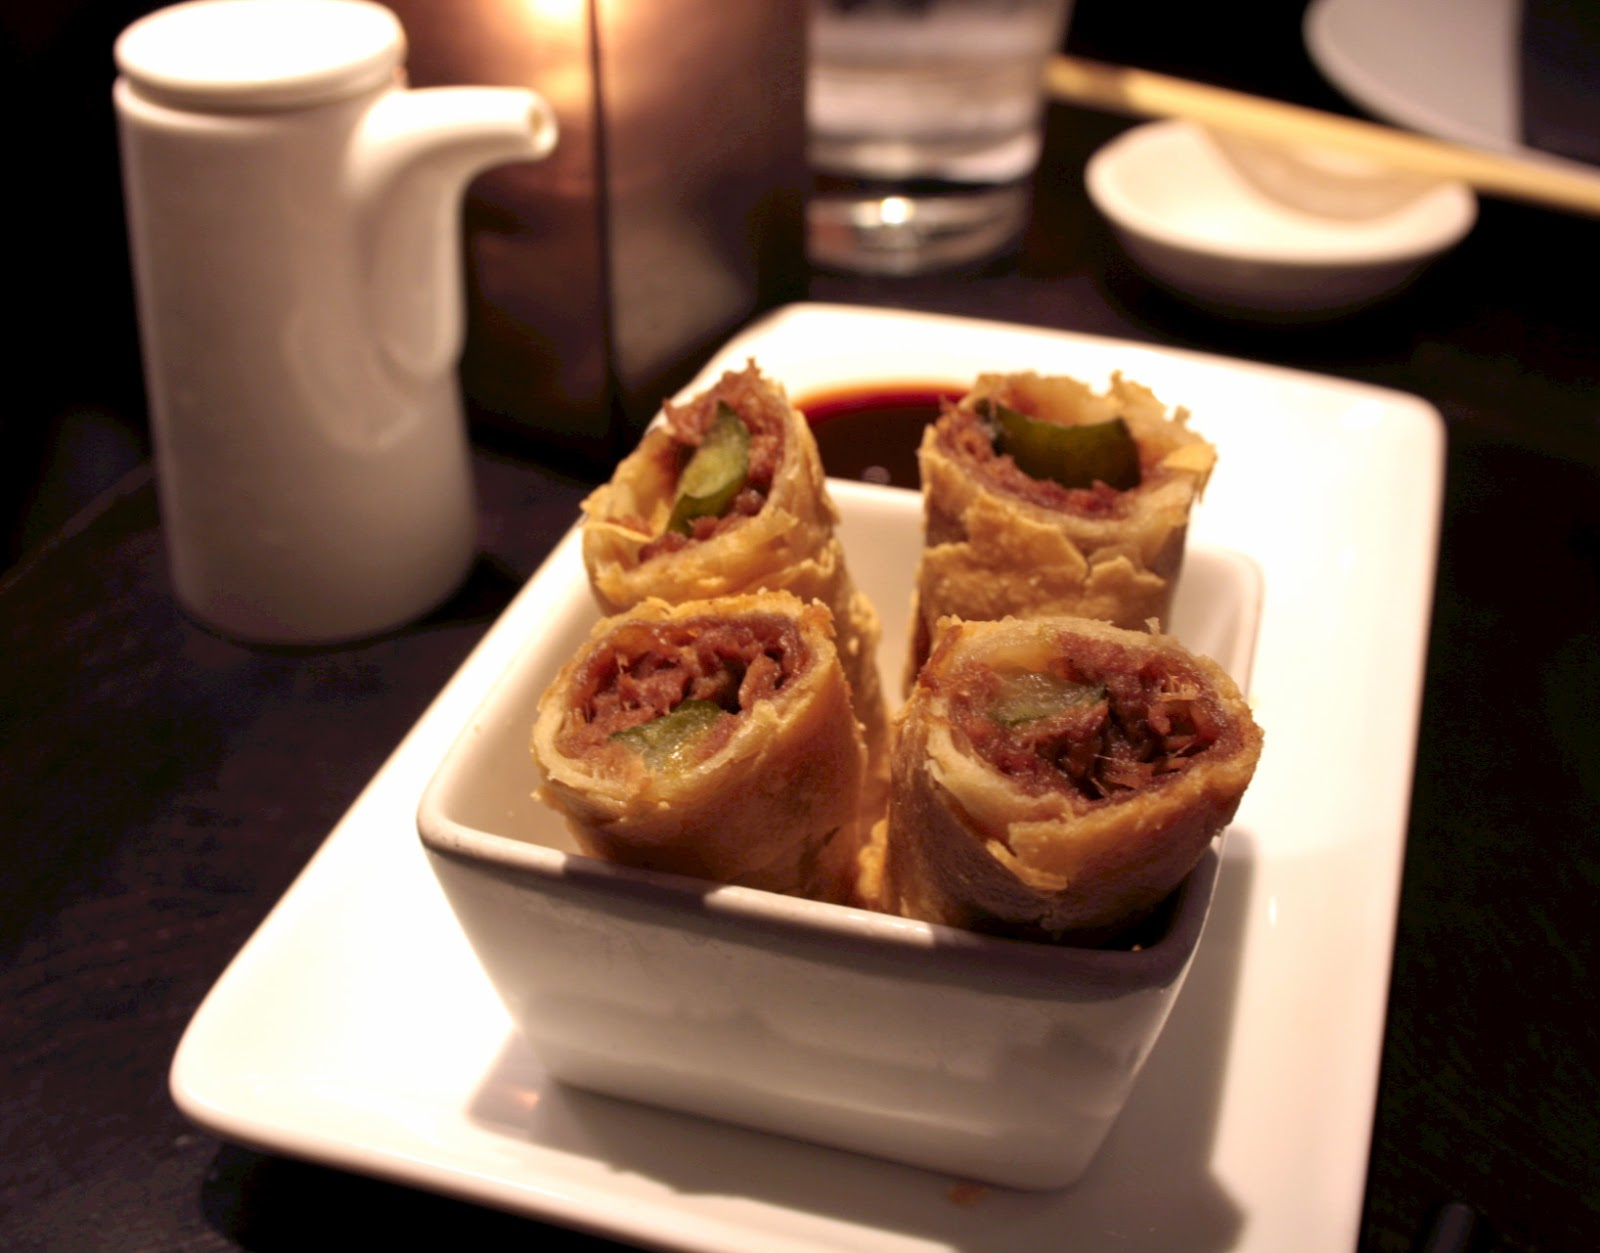 Golden crispy and flaky duck spring rolls from Ping Pong in Soho